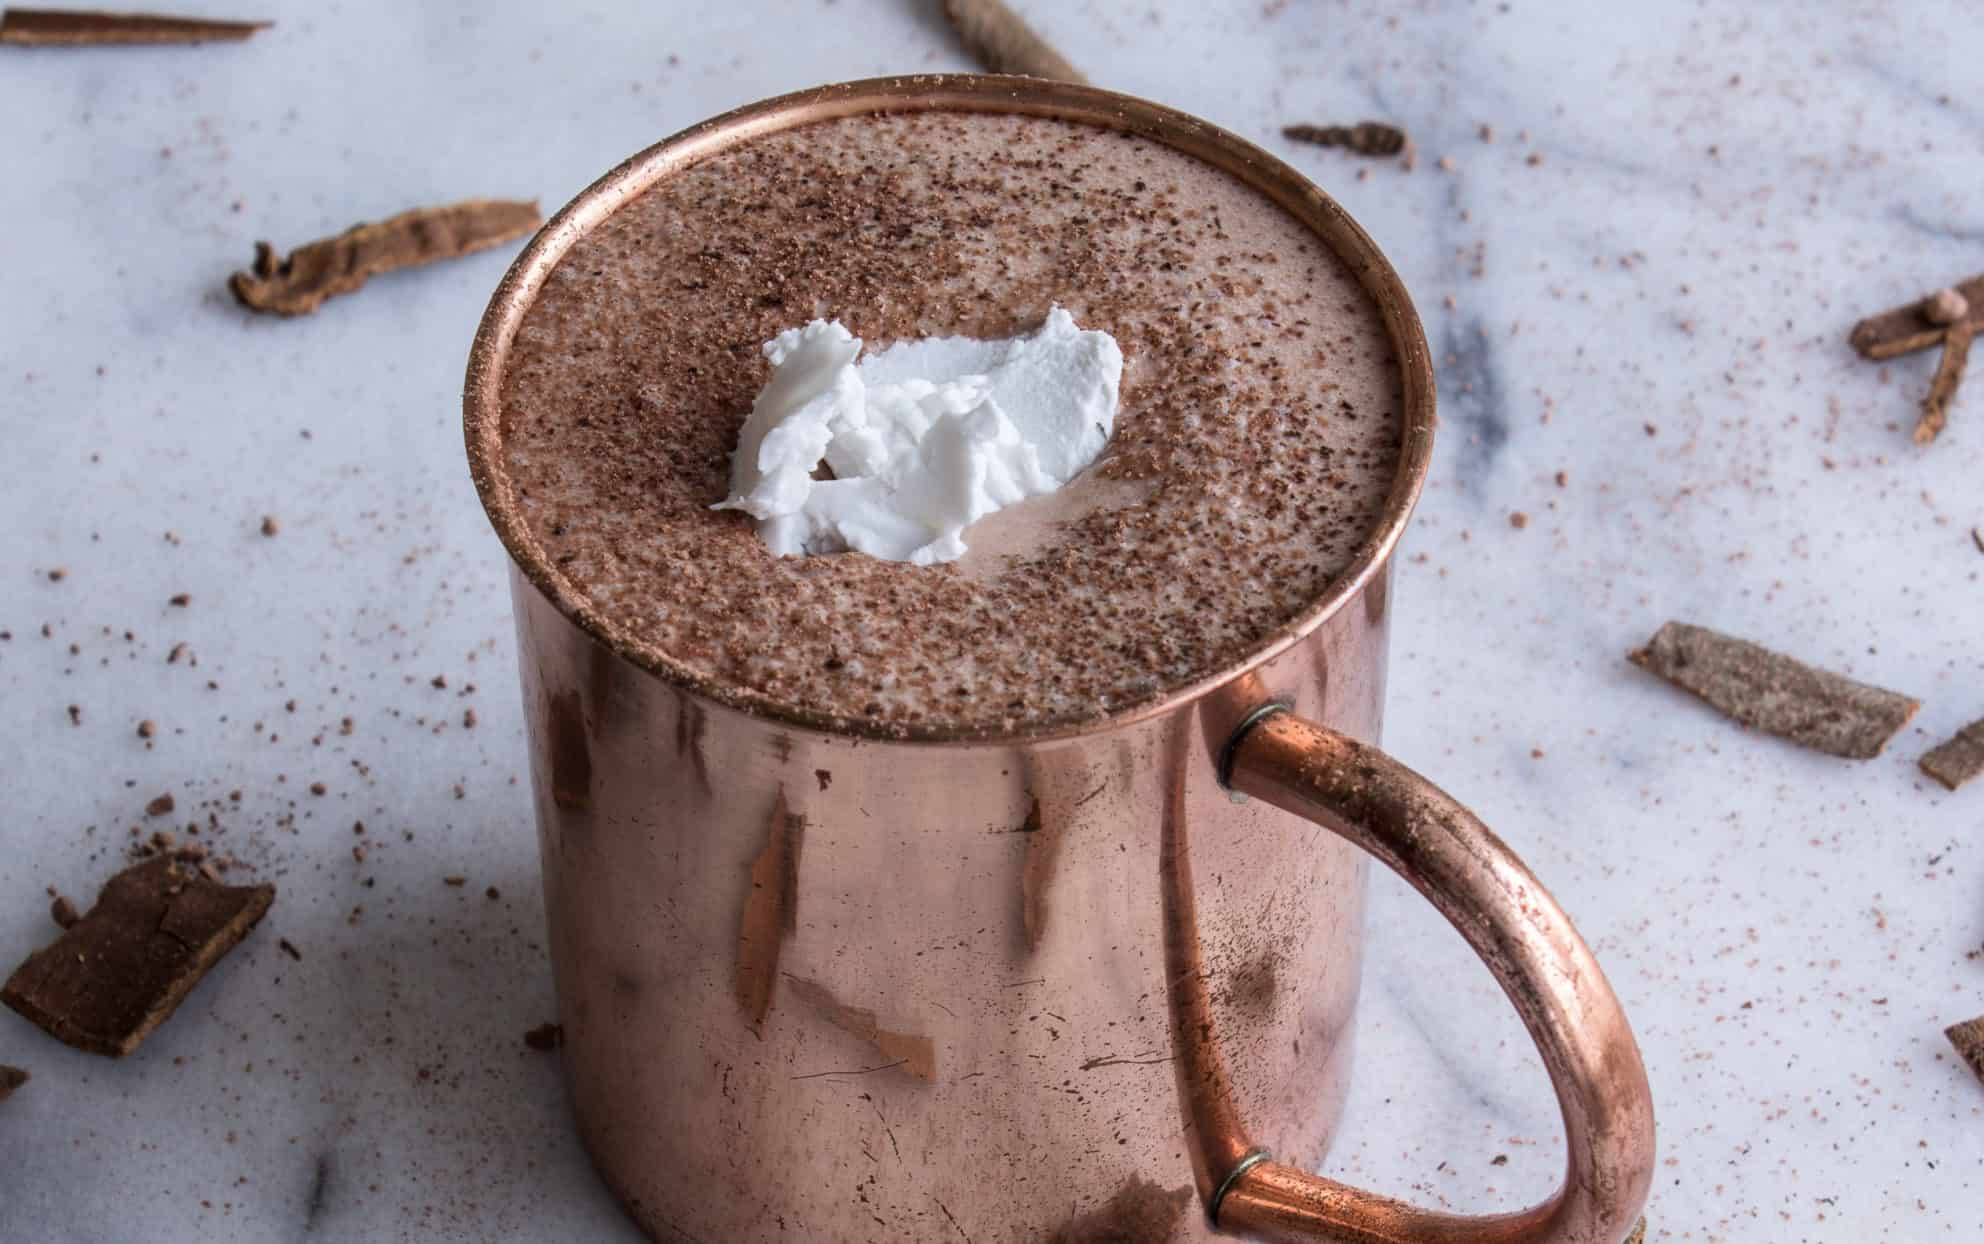 DIY Vegan Hot Chocolate